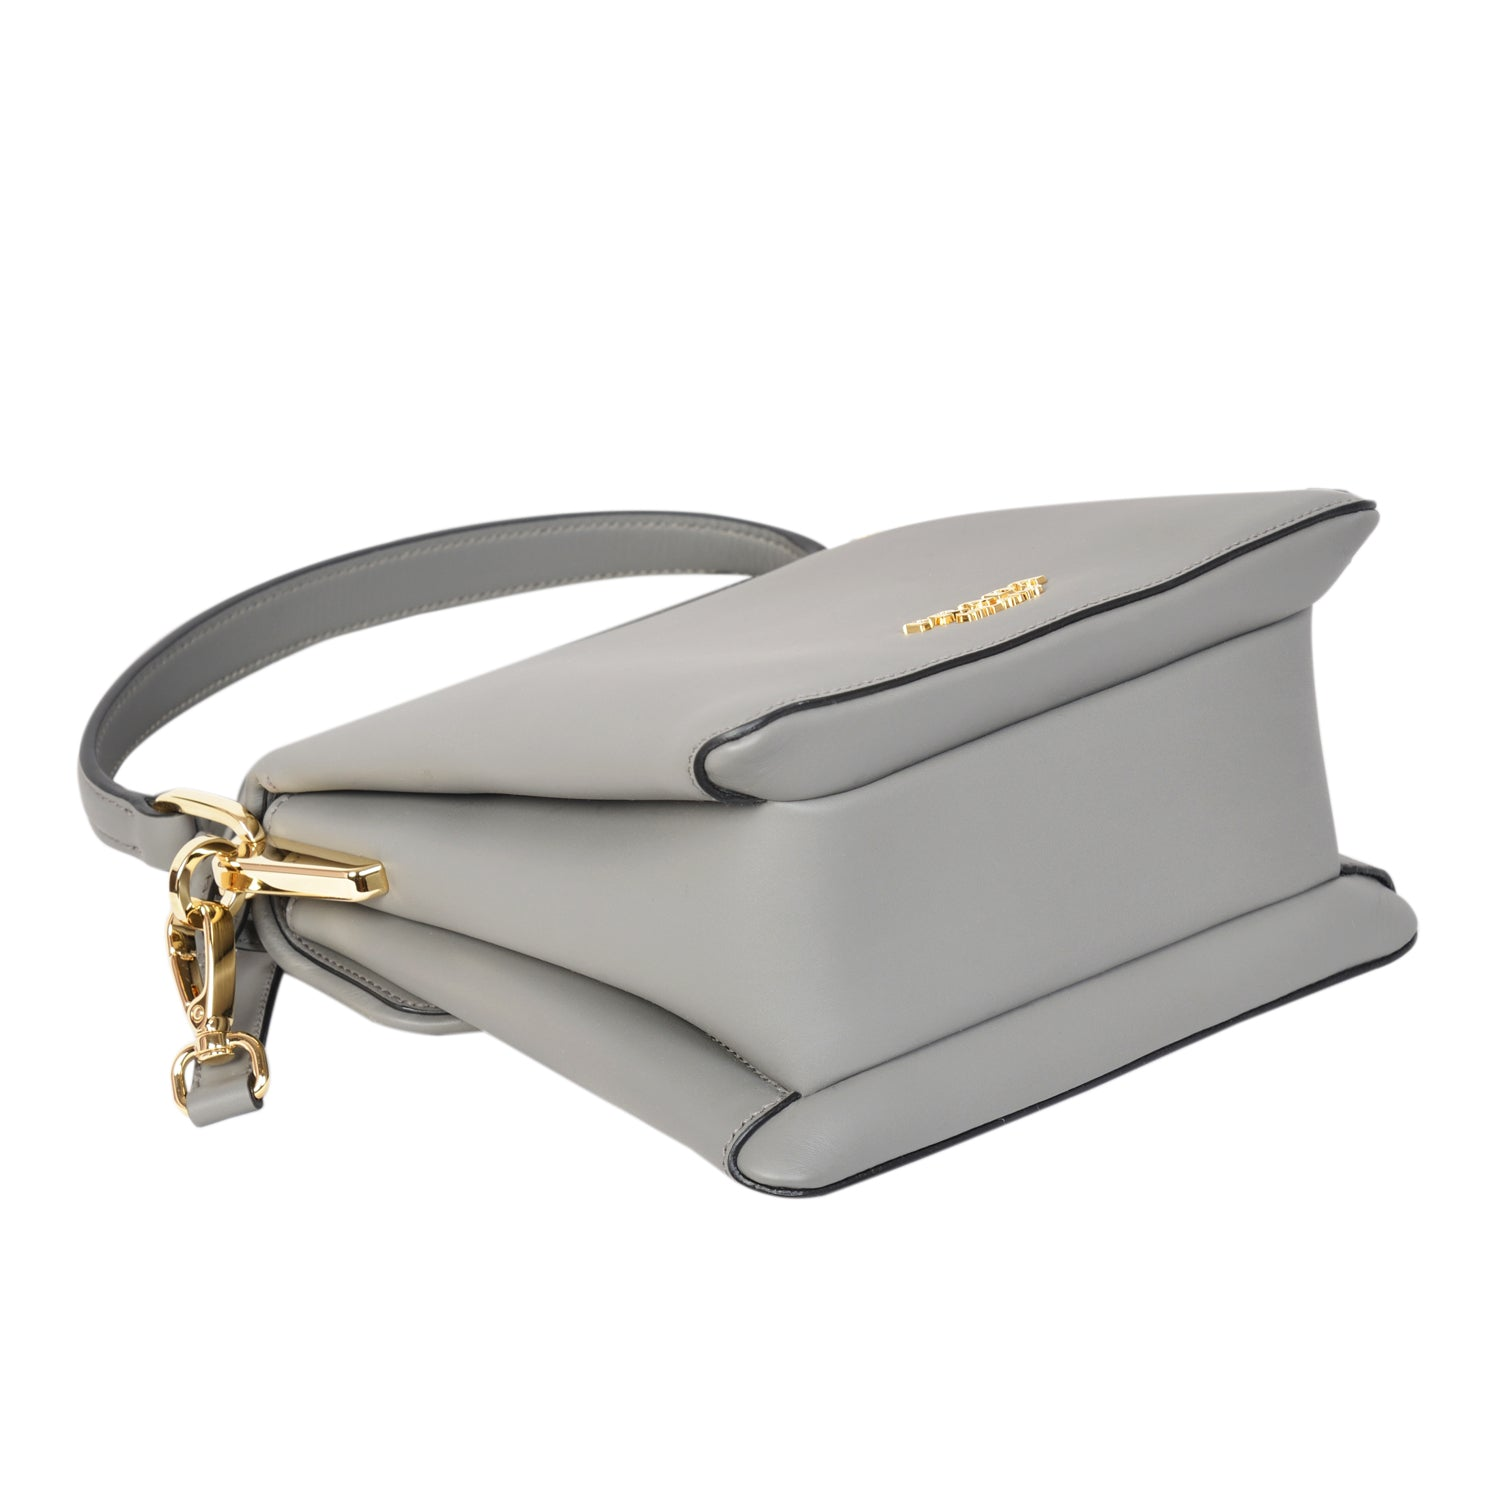 Prada ingrid marble grey small top handle bag in nappa leather. | Shop Luxury Handbag Online